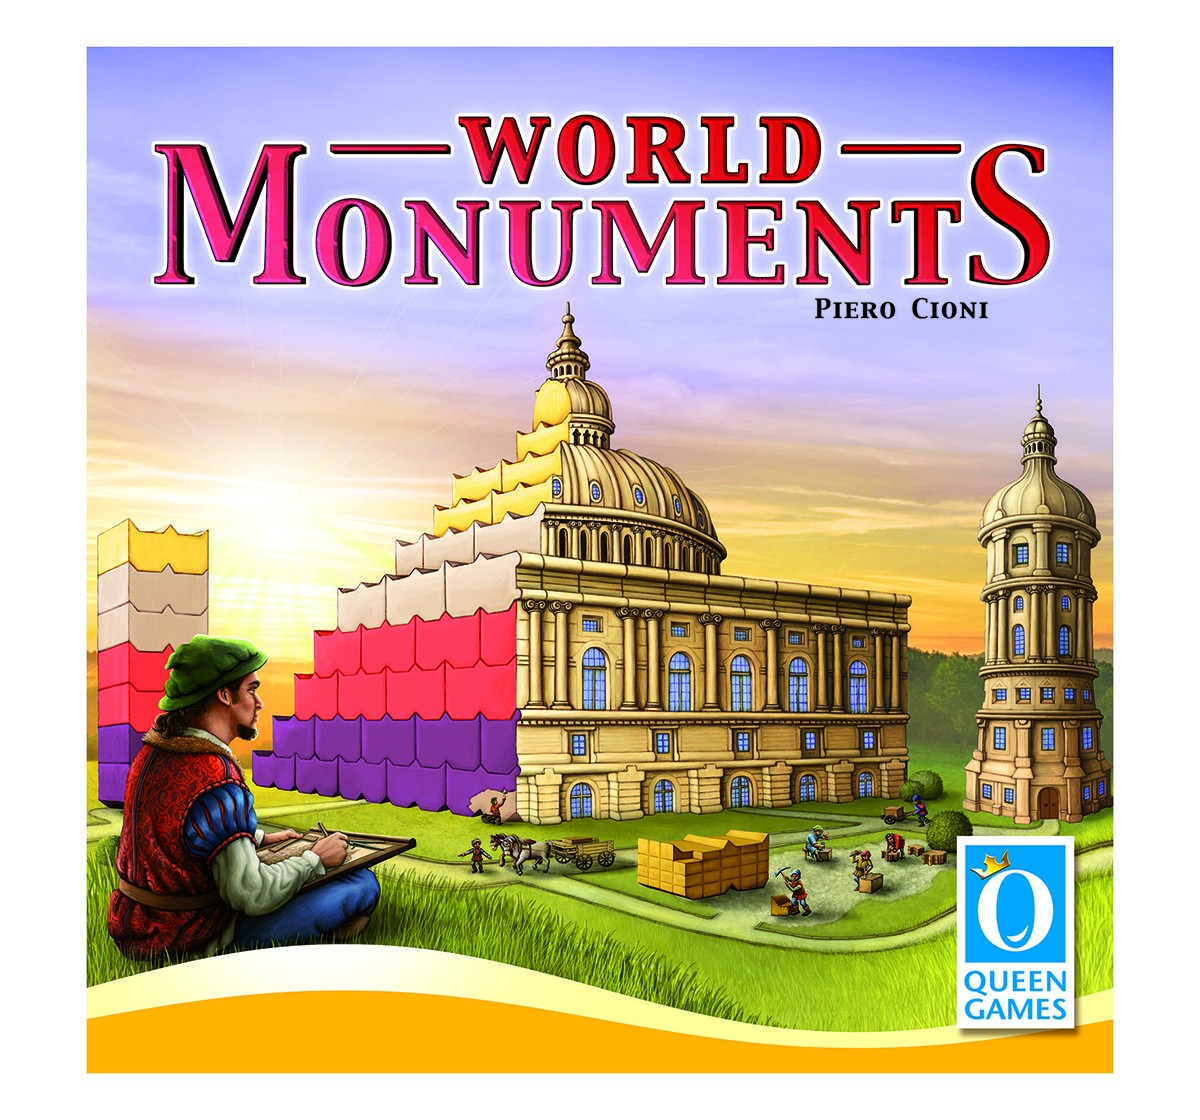 Queen Games World Monuments Board Games for Kids age 8Y+